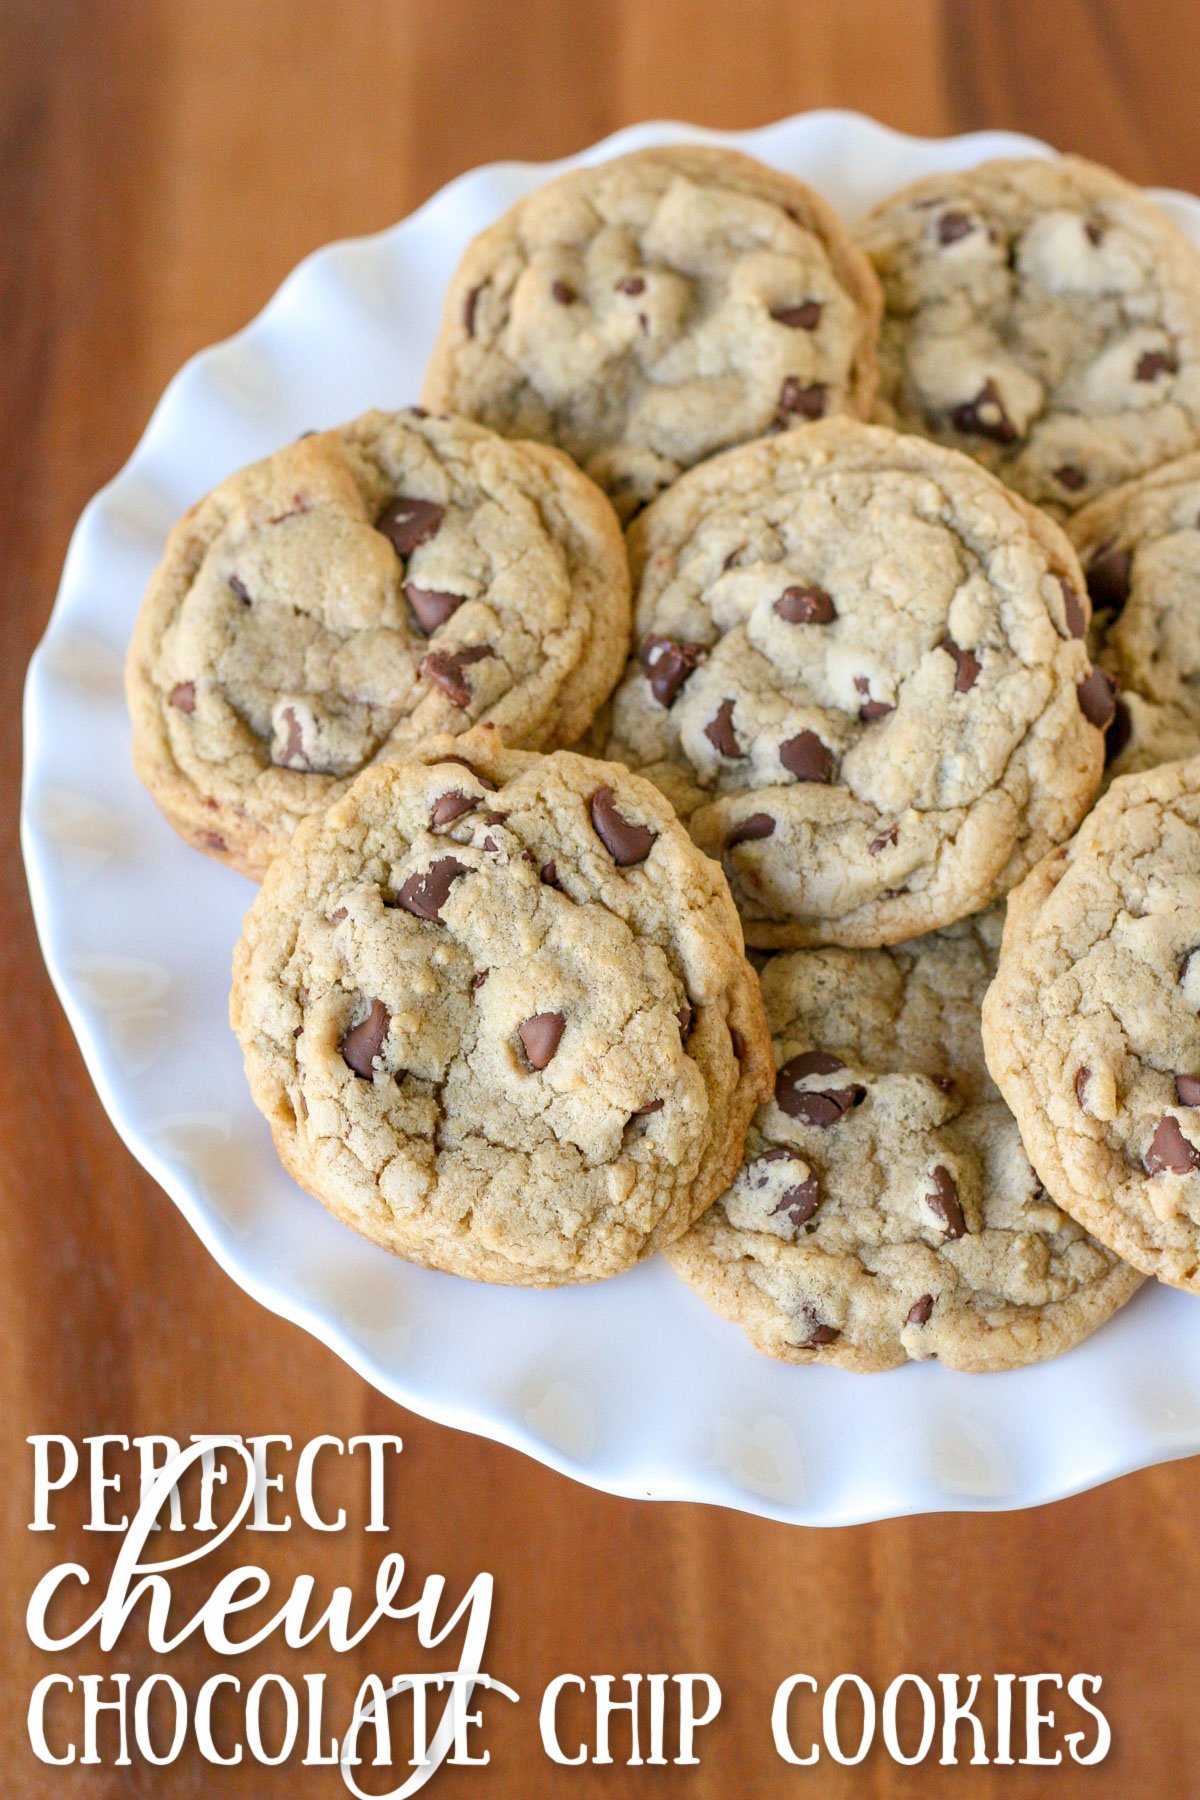 chocolate chip cookies piled on white cake stand with wood surface underneath and text overlay at the bottom